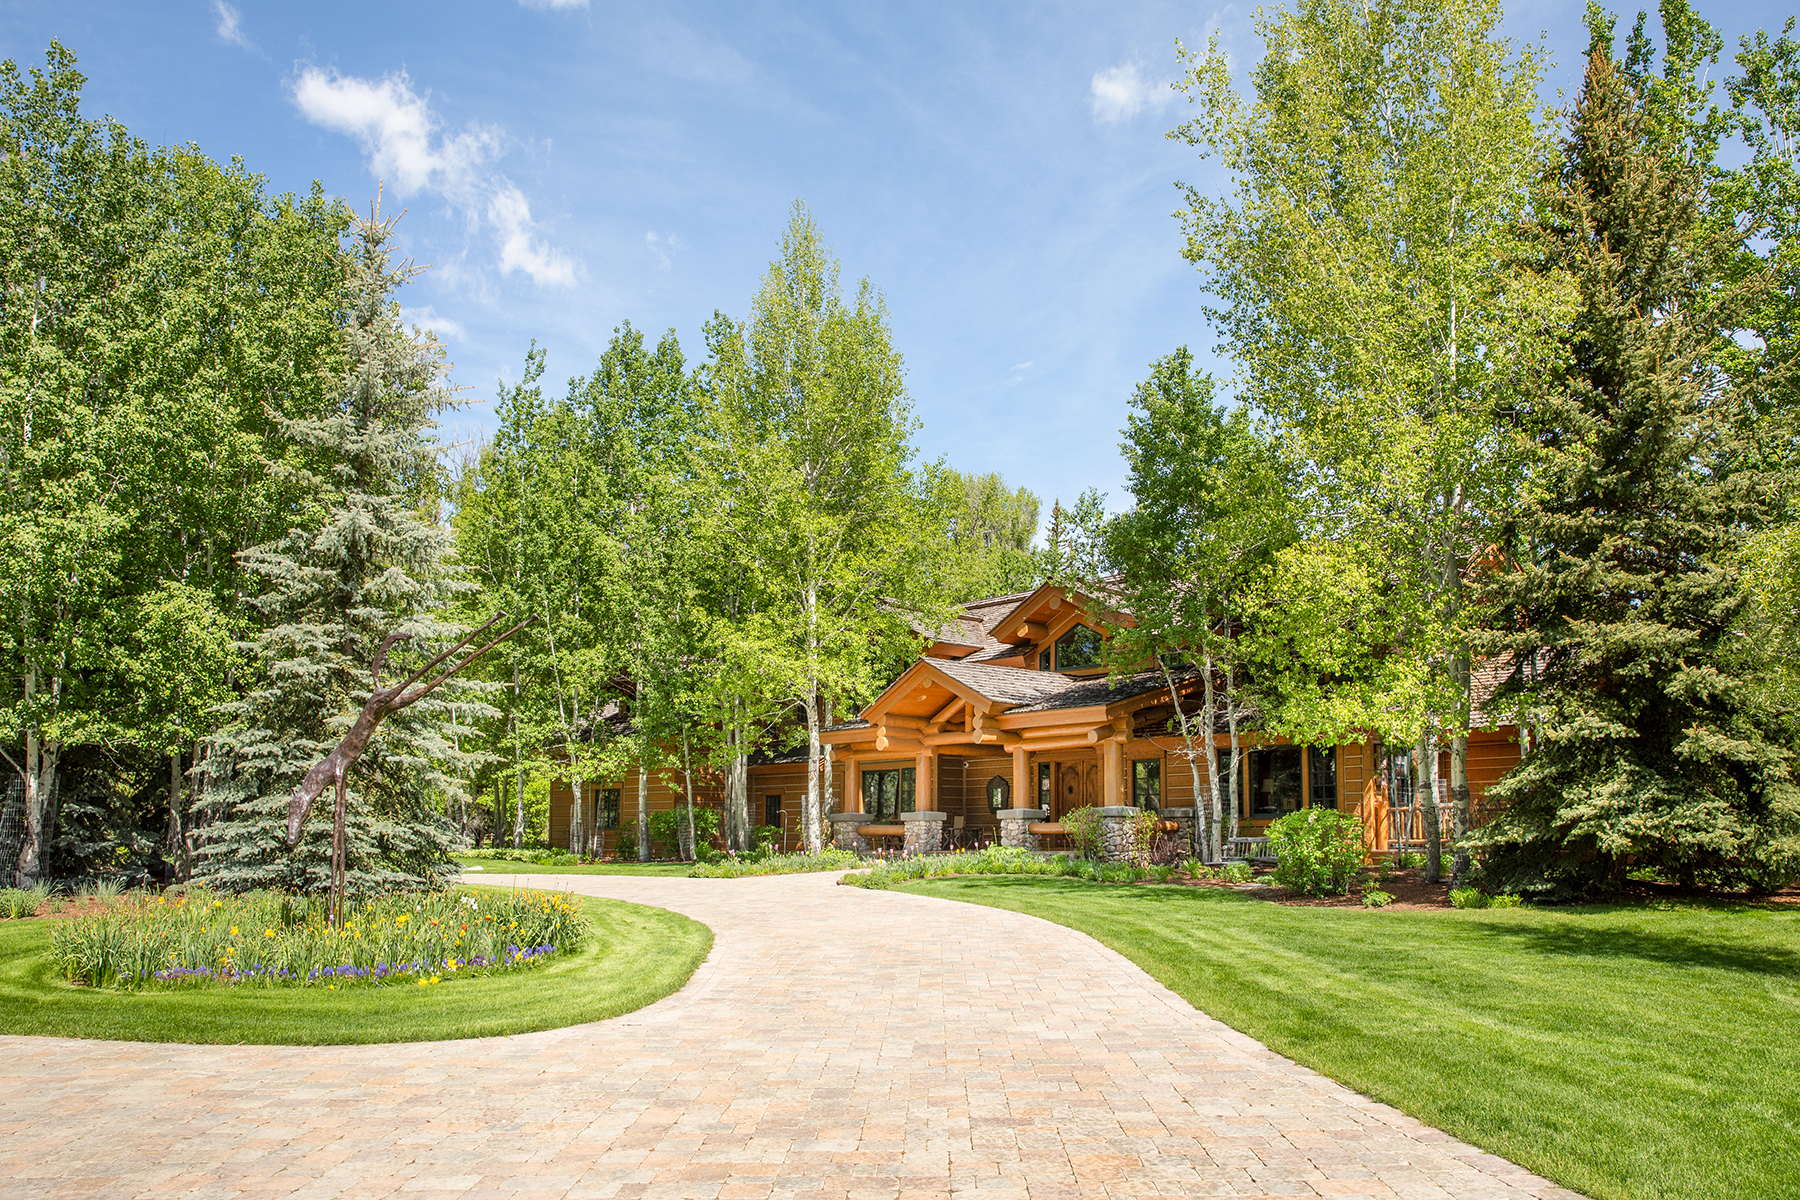 Single Family Homes for Sale at Stunning Setting in Ely Springs 1155 S Ely Springs Road Jackson, Wyoming 83001 United States